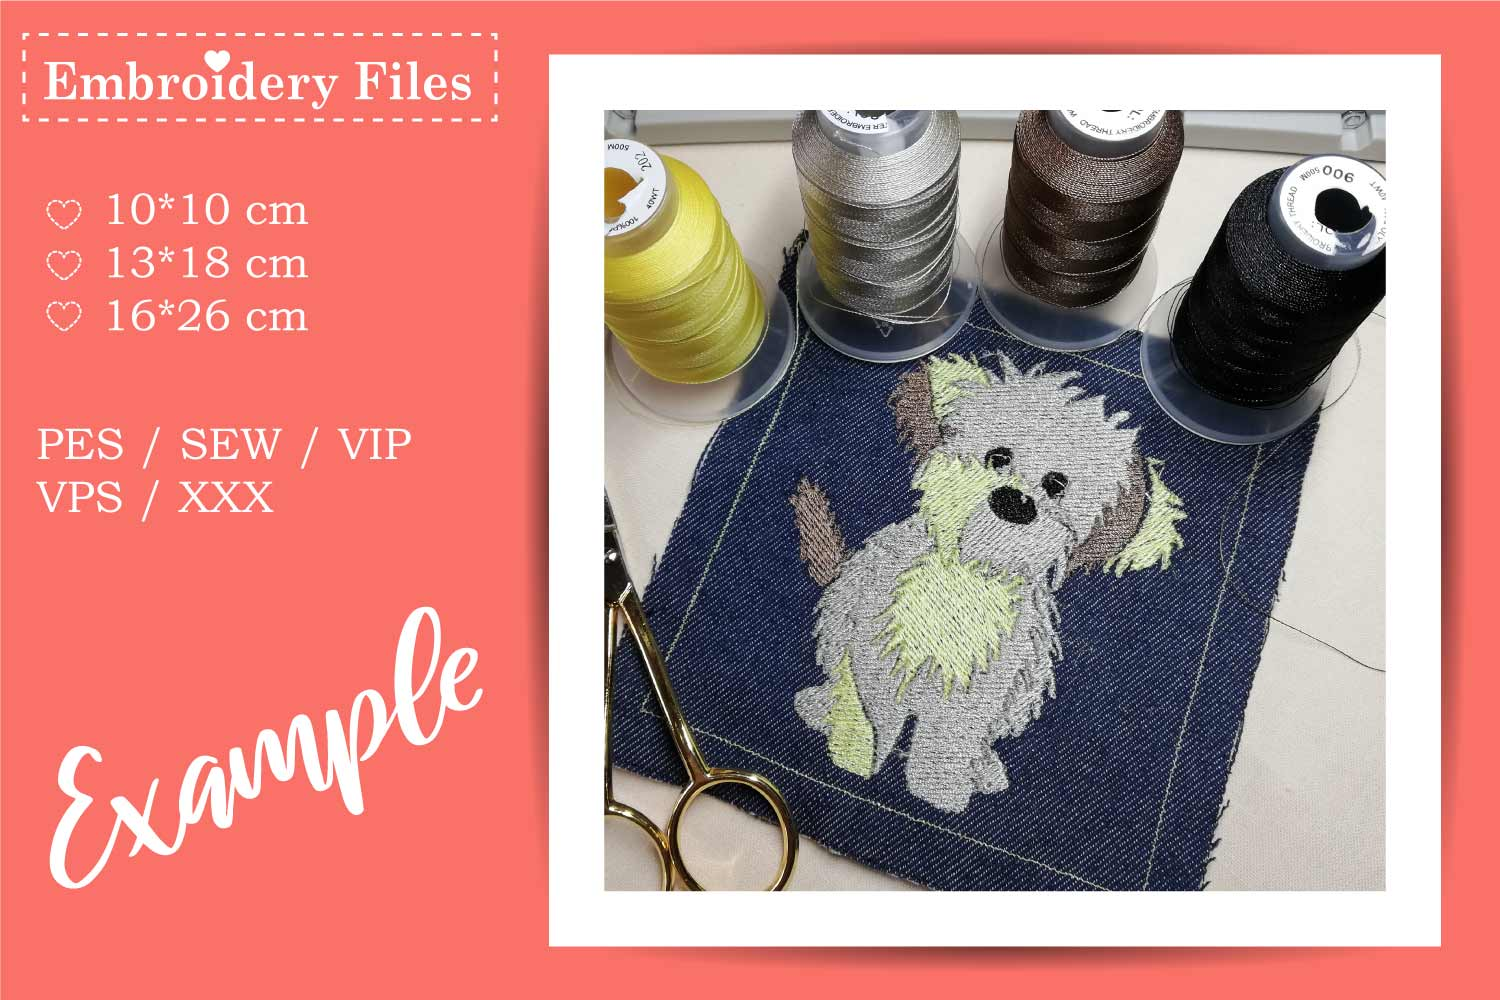 Cute little Dog - Embroidery File for Beginners example image 1